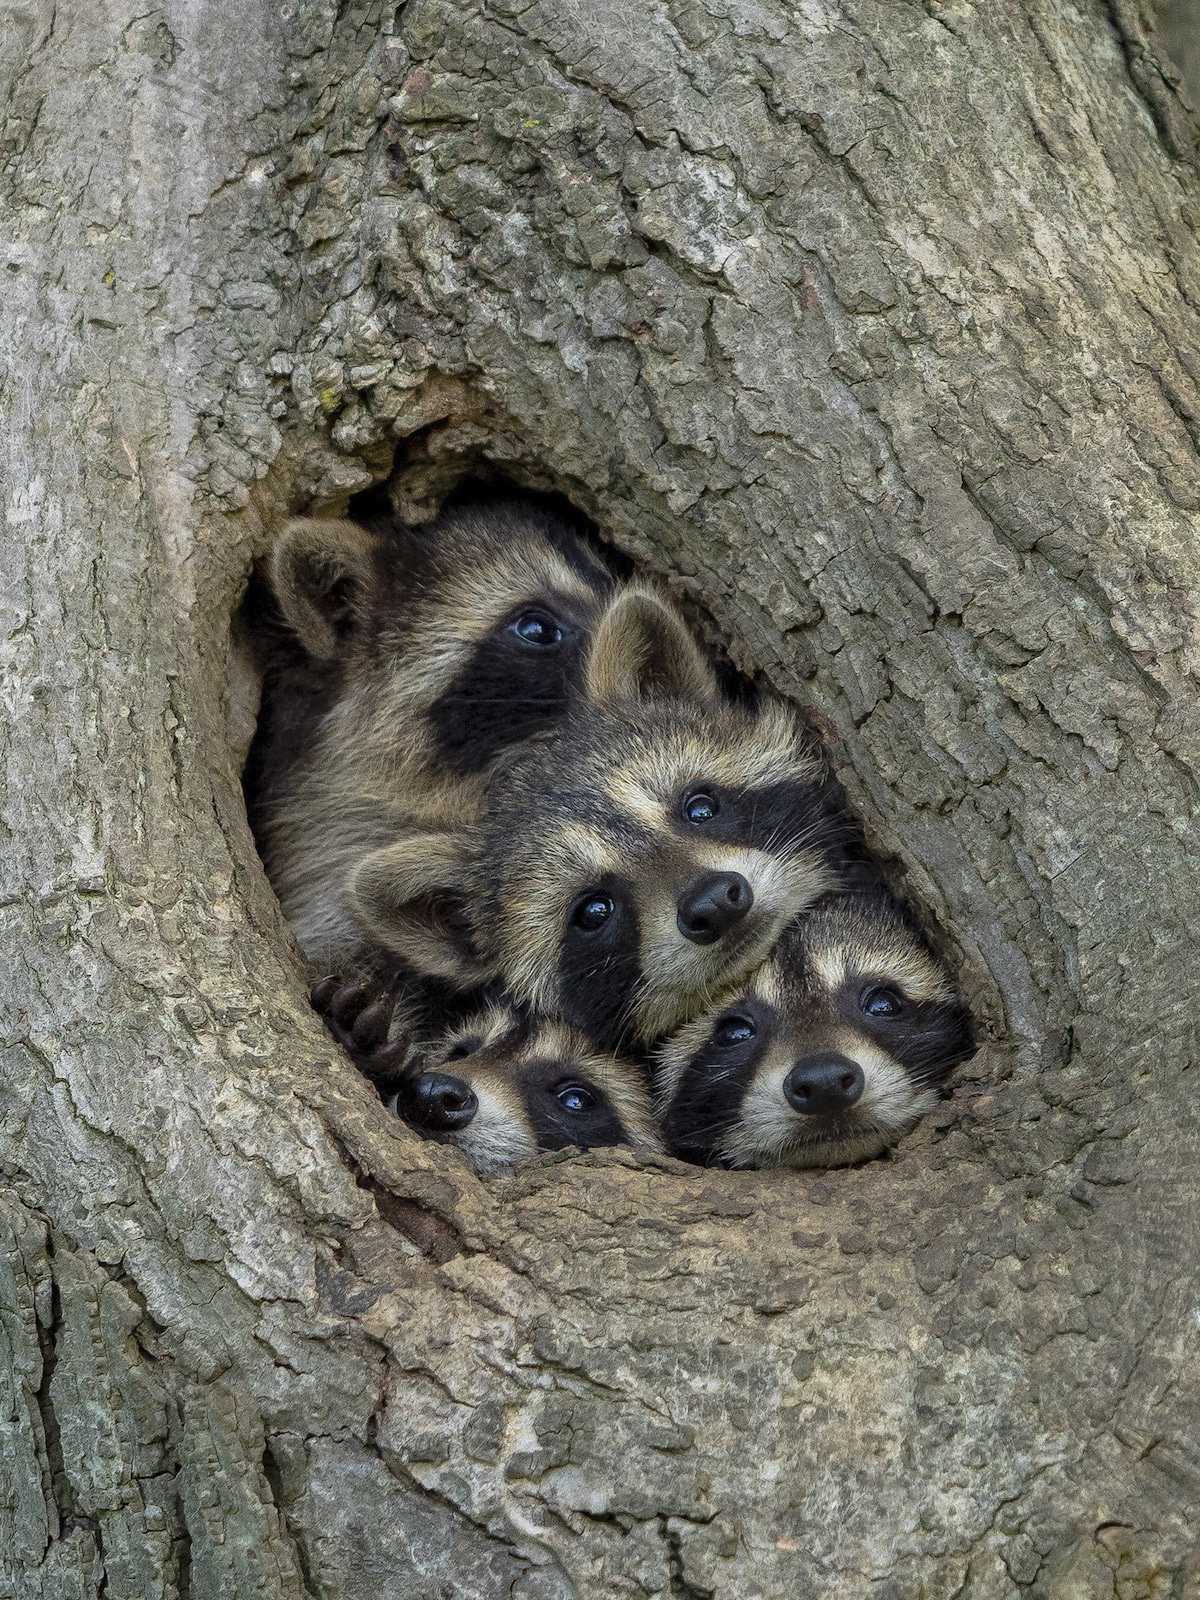 Raccoon Family Sticking Their Heads Out of Hole in a Tree